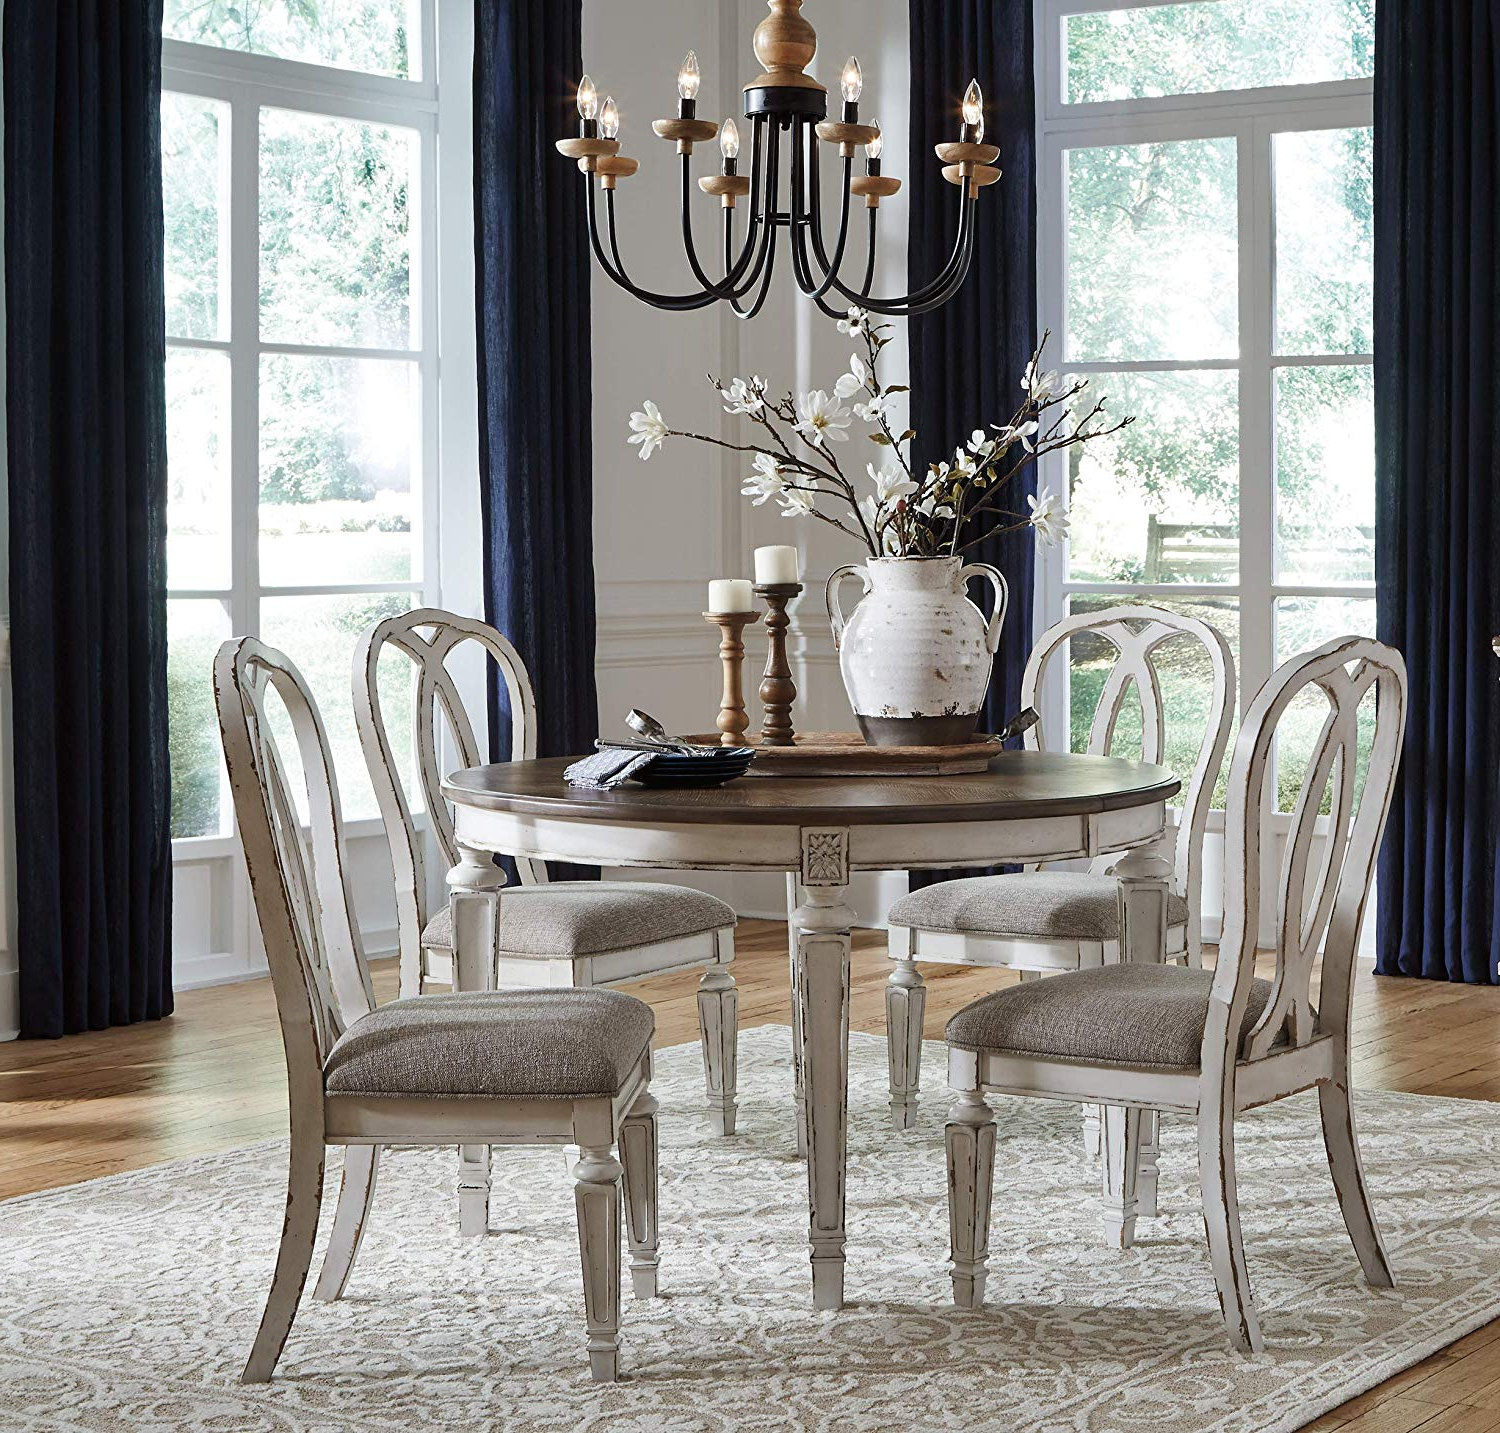 Ingred Extending Dining Tables throughout Latest Amazon - Furnituremaxx Ralinton Casual Wood Chipped